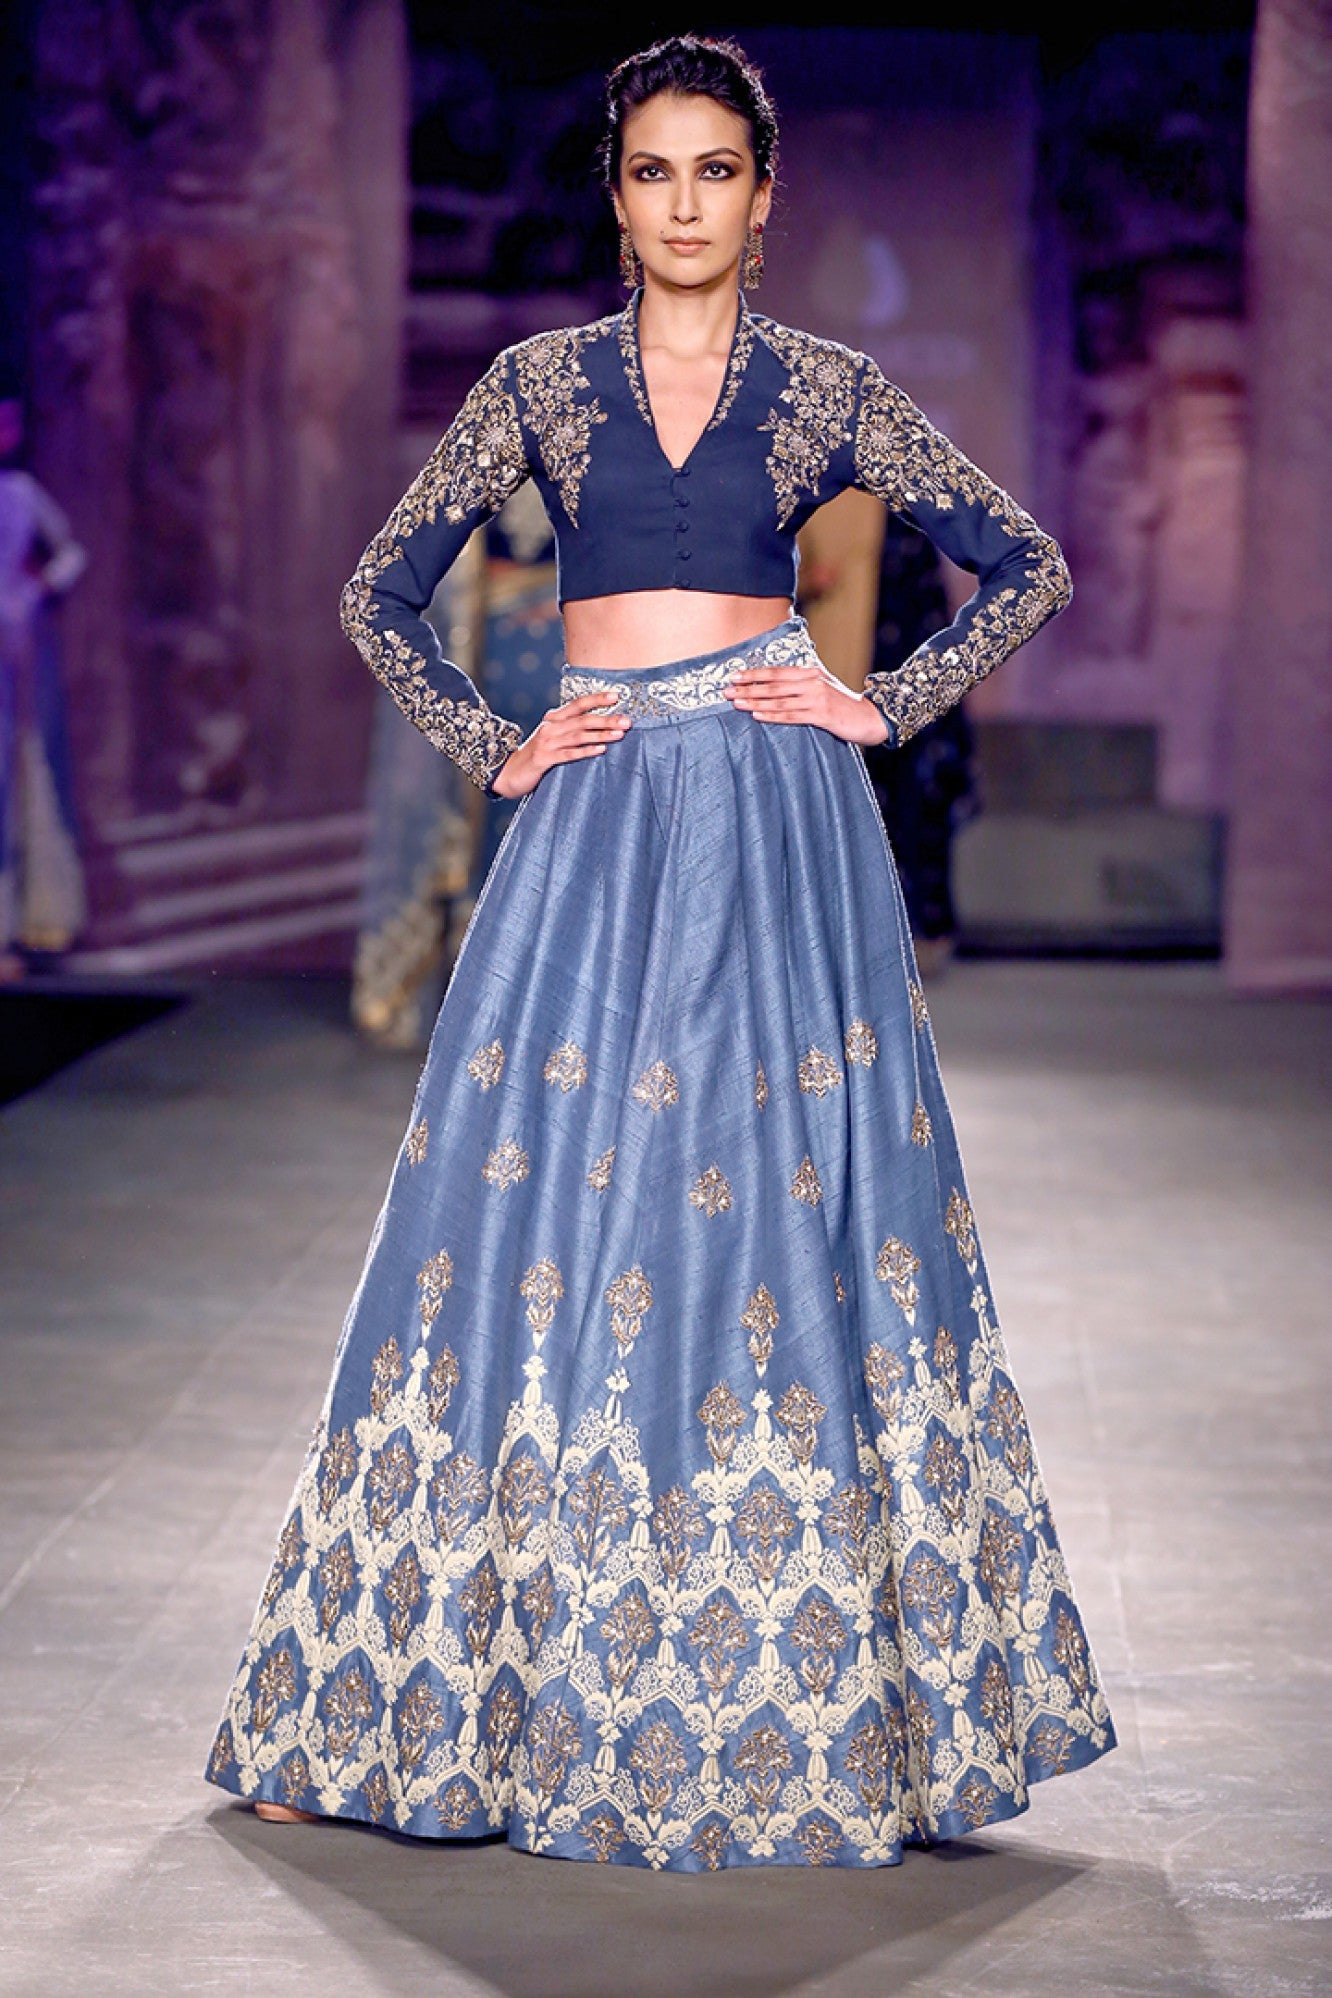 4b413458ef69c9 Powder blue lehenga skirt with Navy blue embroidered blouse – Panache Haute  Couture